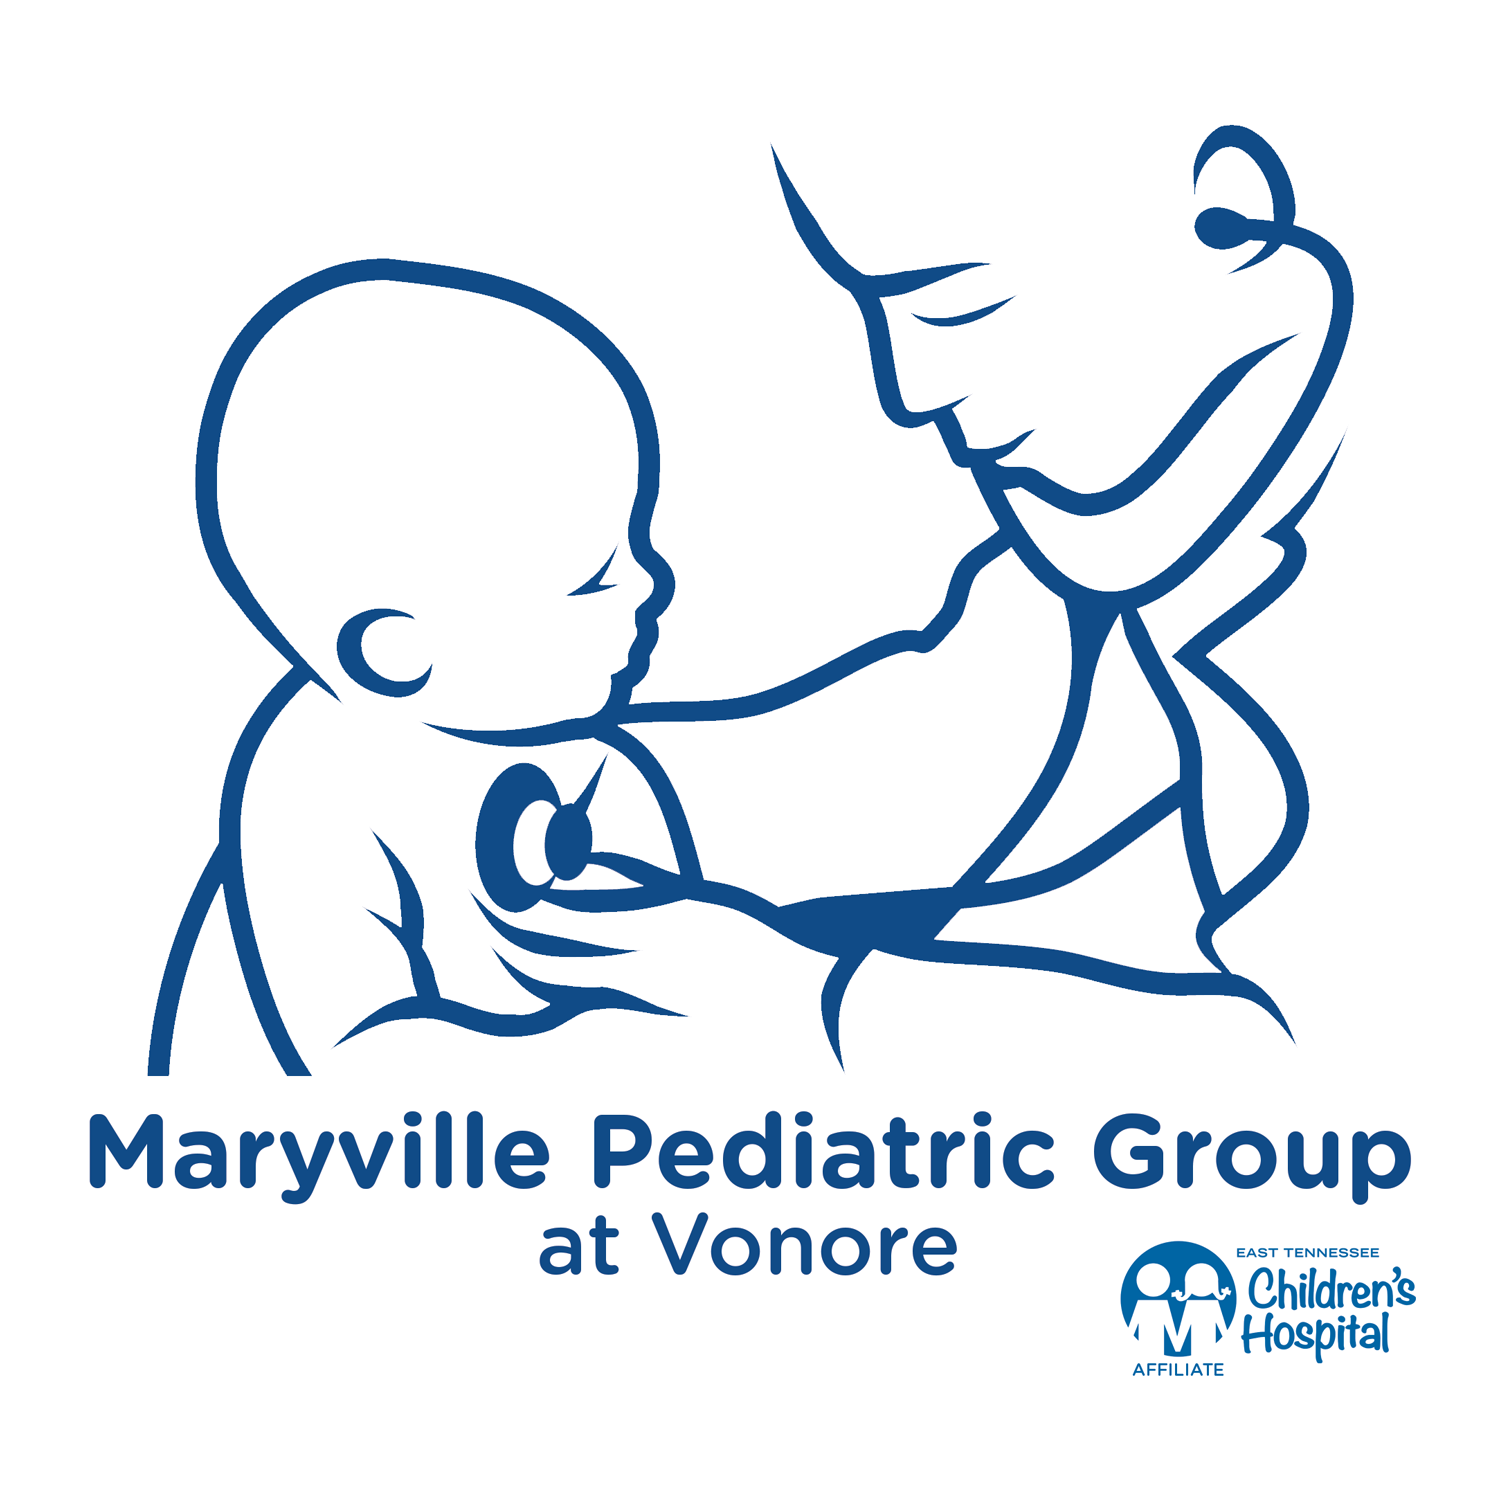 Maryville Pediatric Group at Vonore